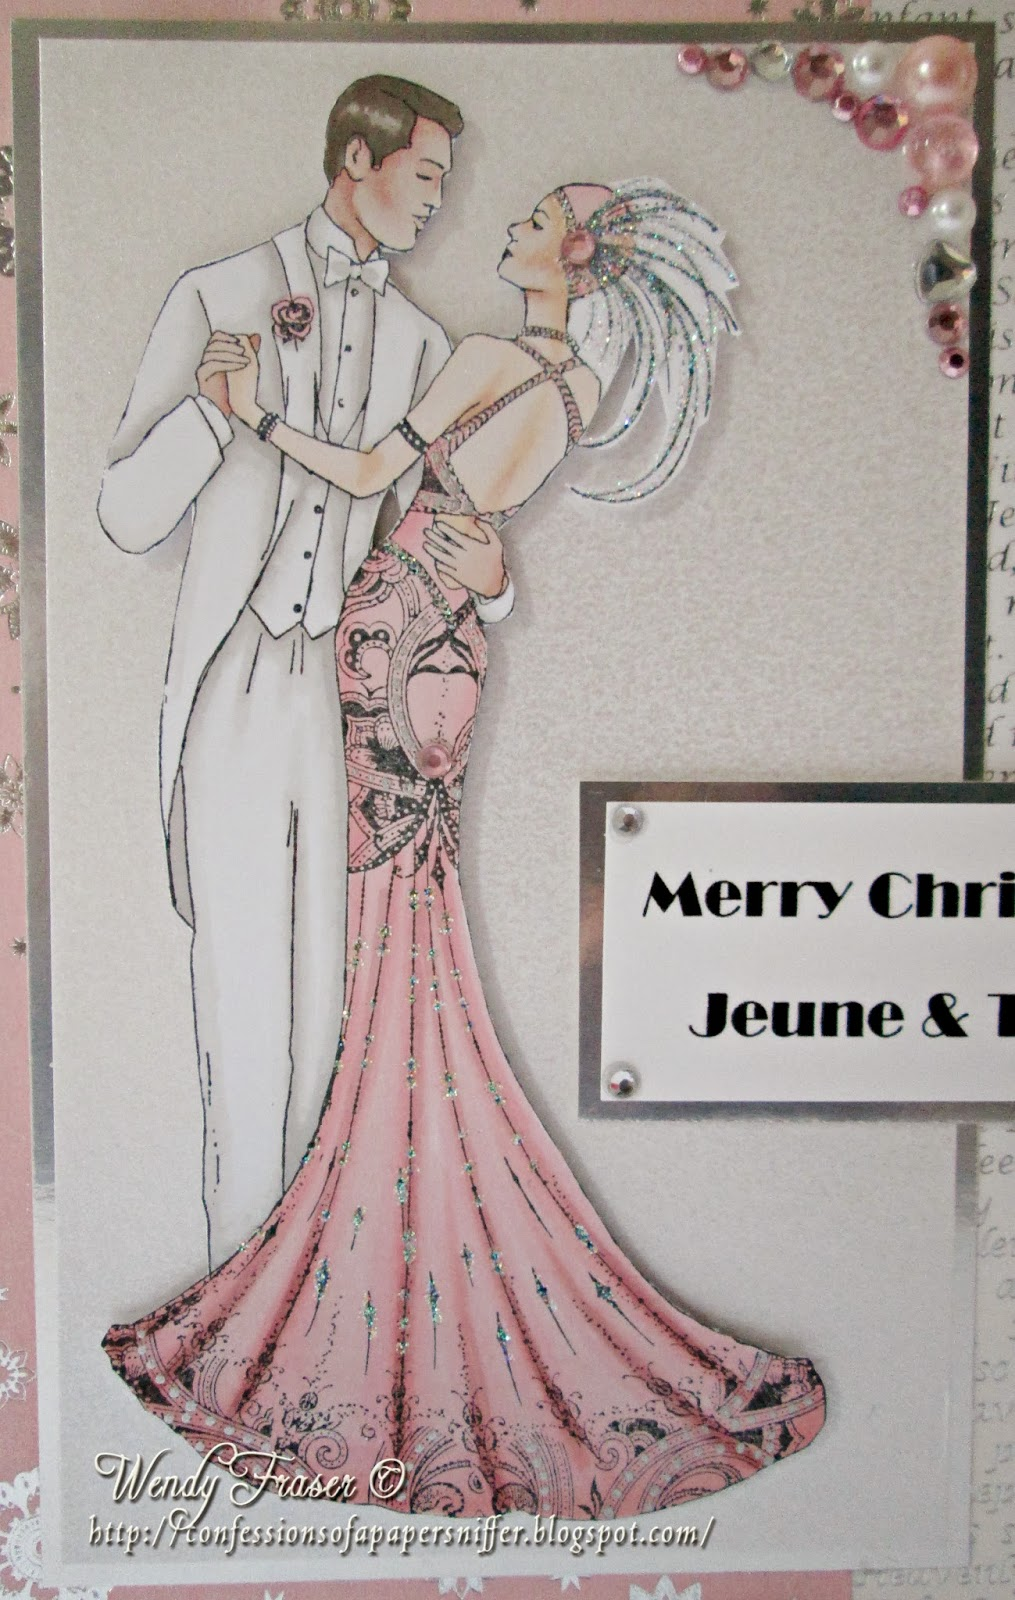 Confessions of a Papersniffer: More Art Deco Christmas Cards